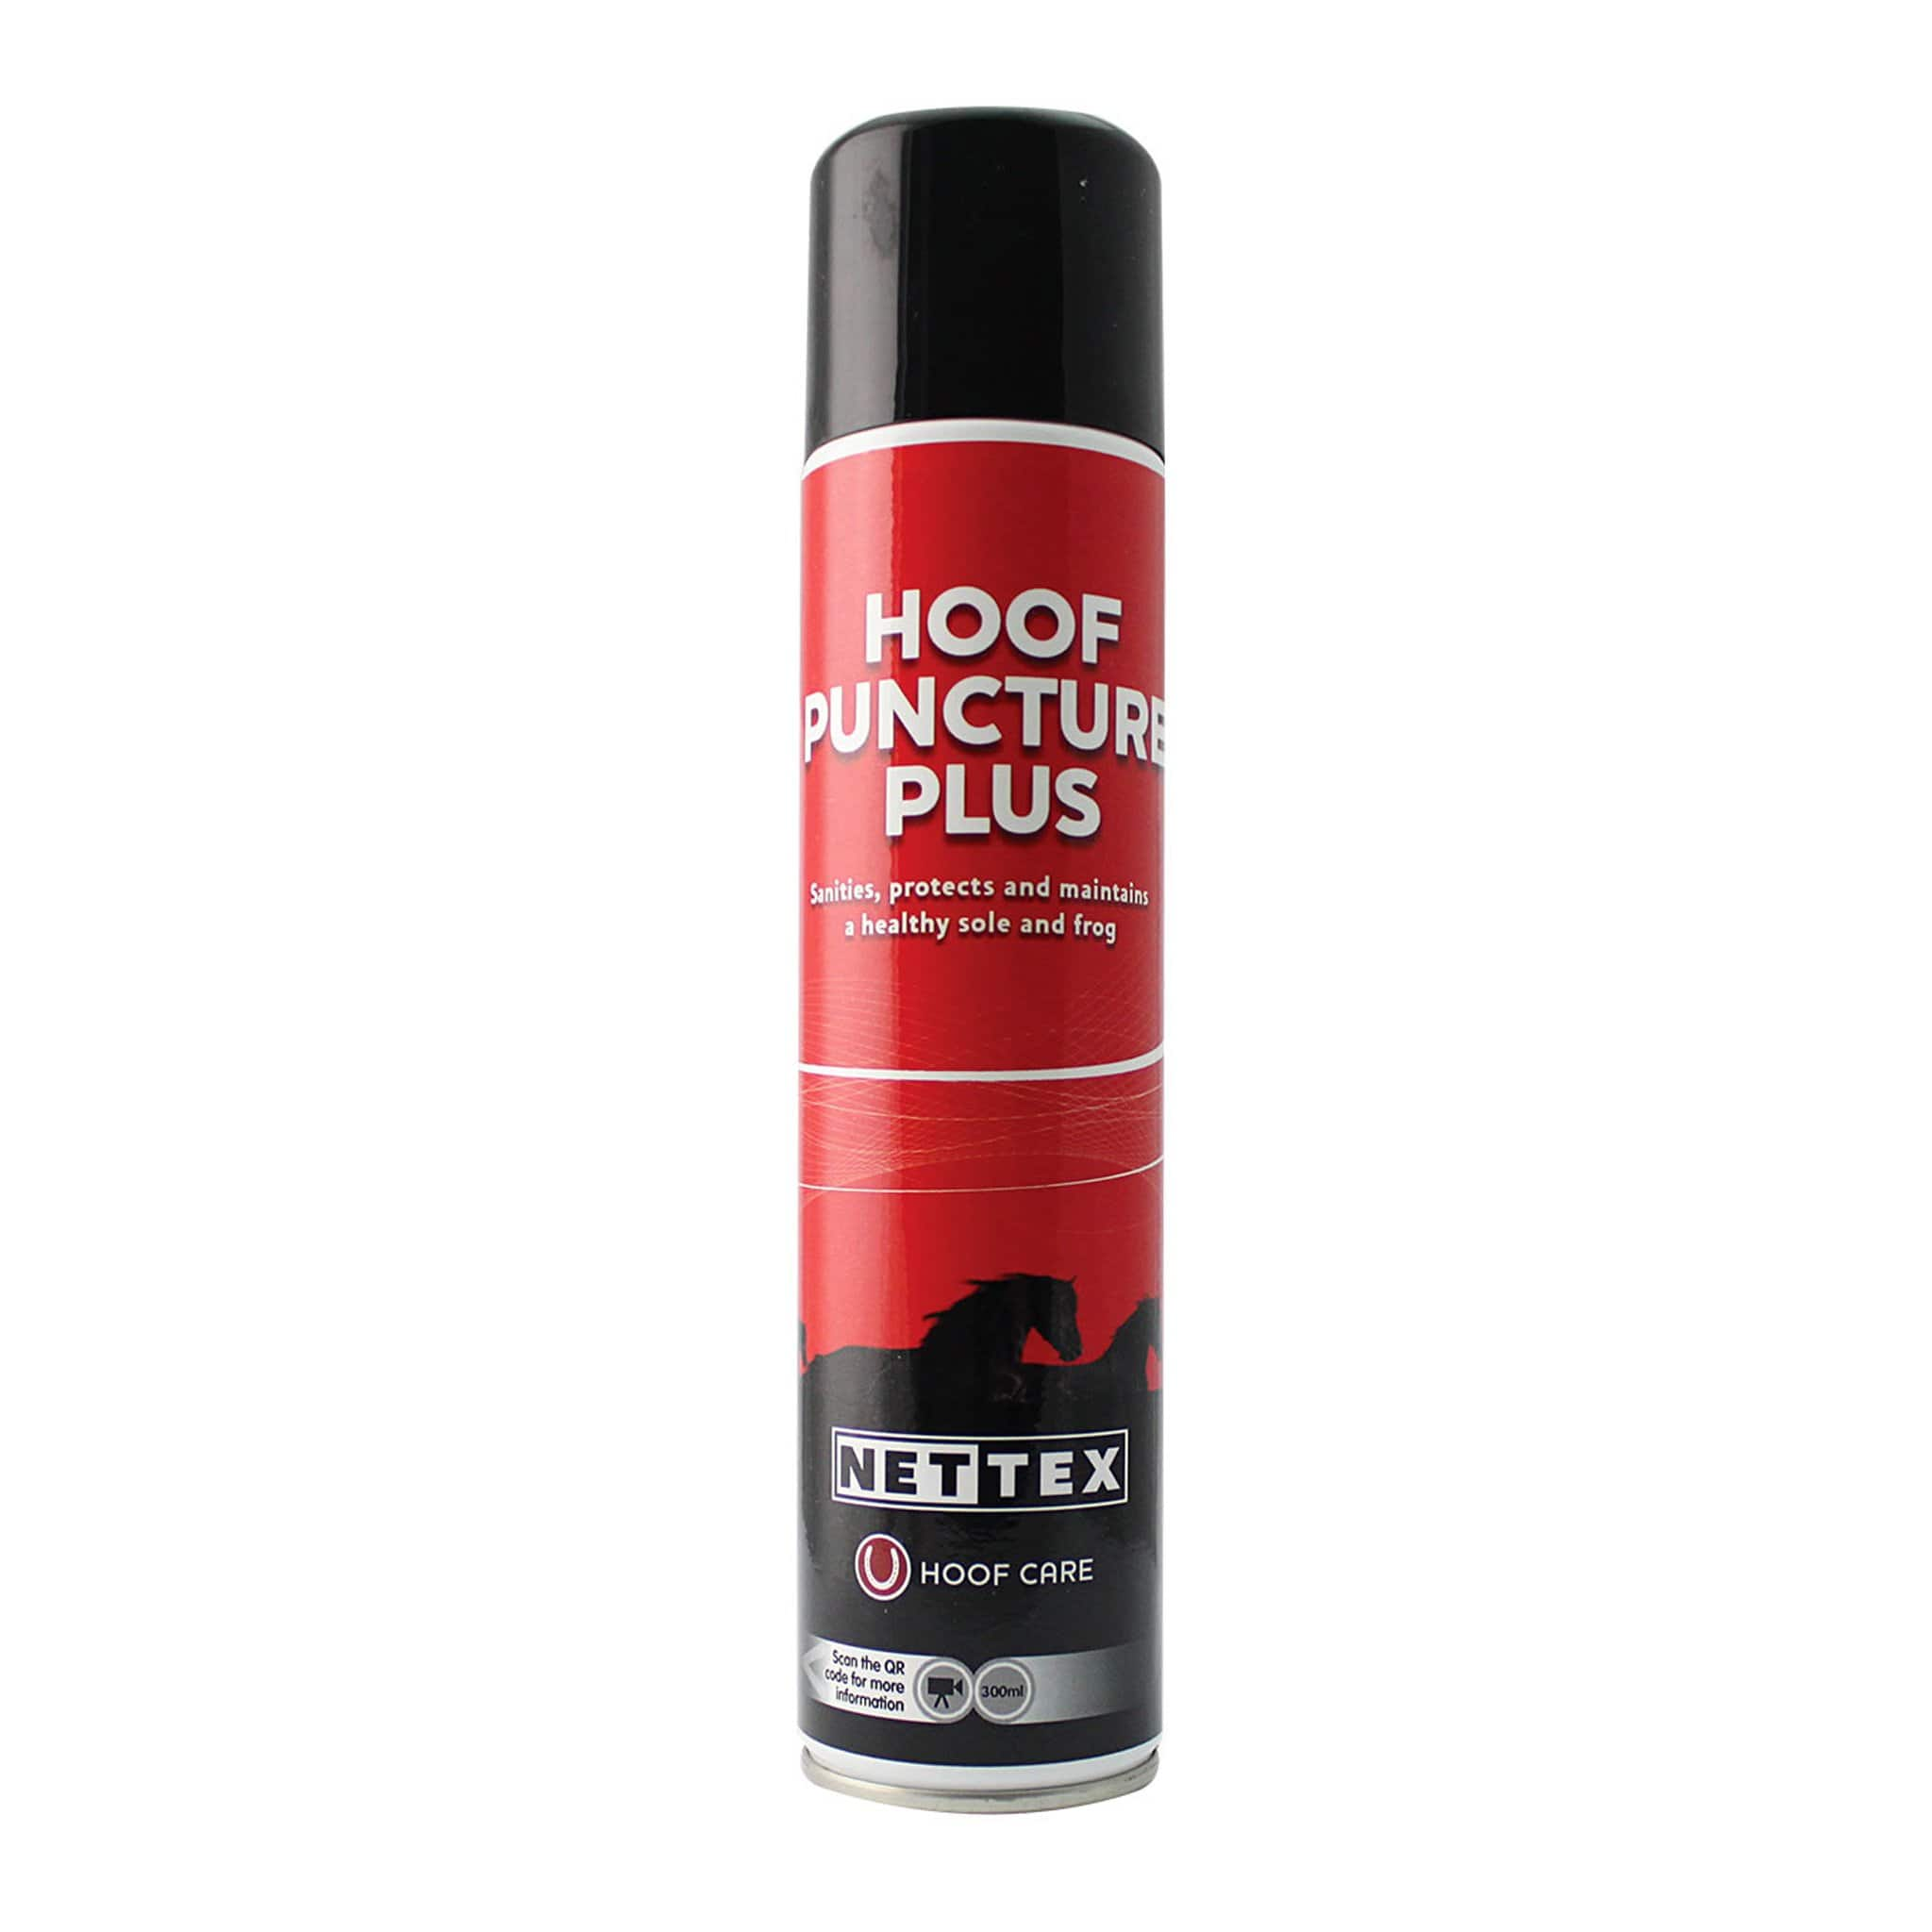 Nettex Hoof Puncture Plus 300ML NET0165.